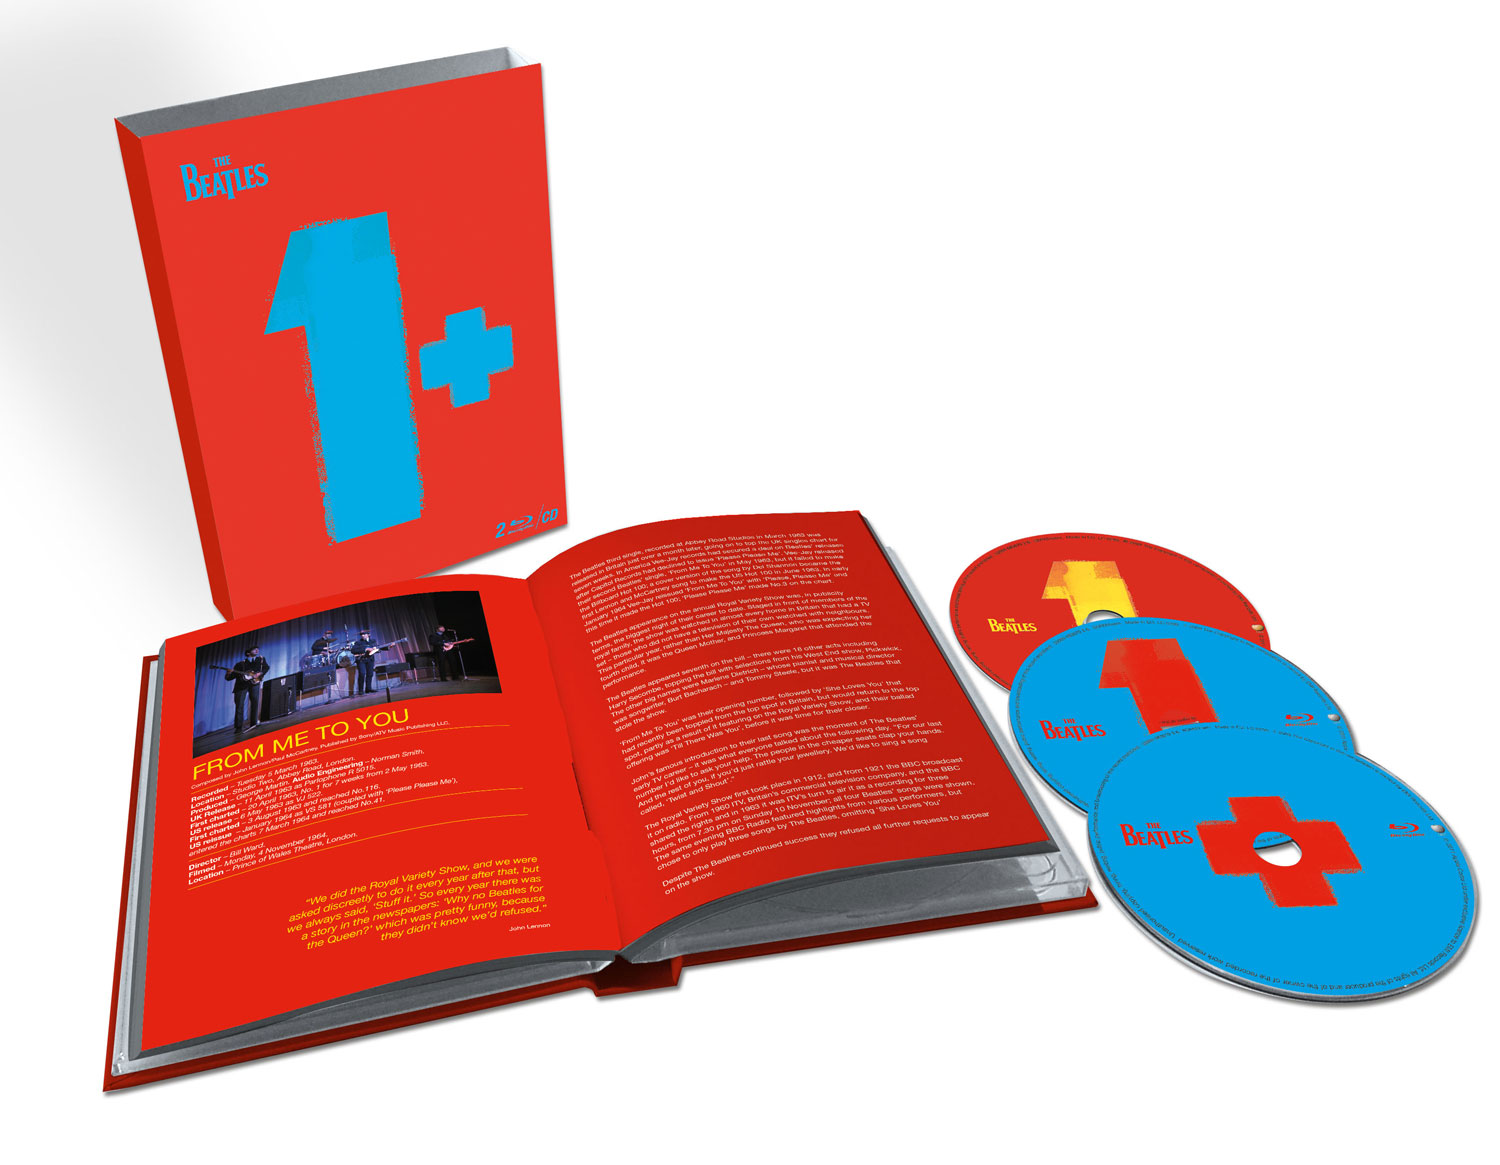 The Beatles / 1+ Deluxe CD+2blu-ray with restored videos and remixed audio